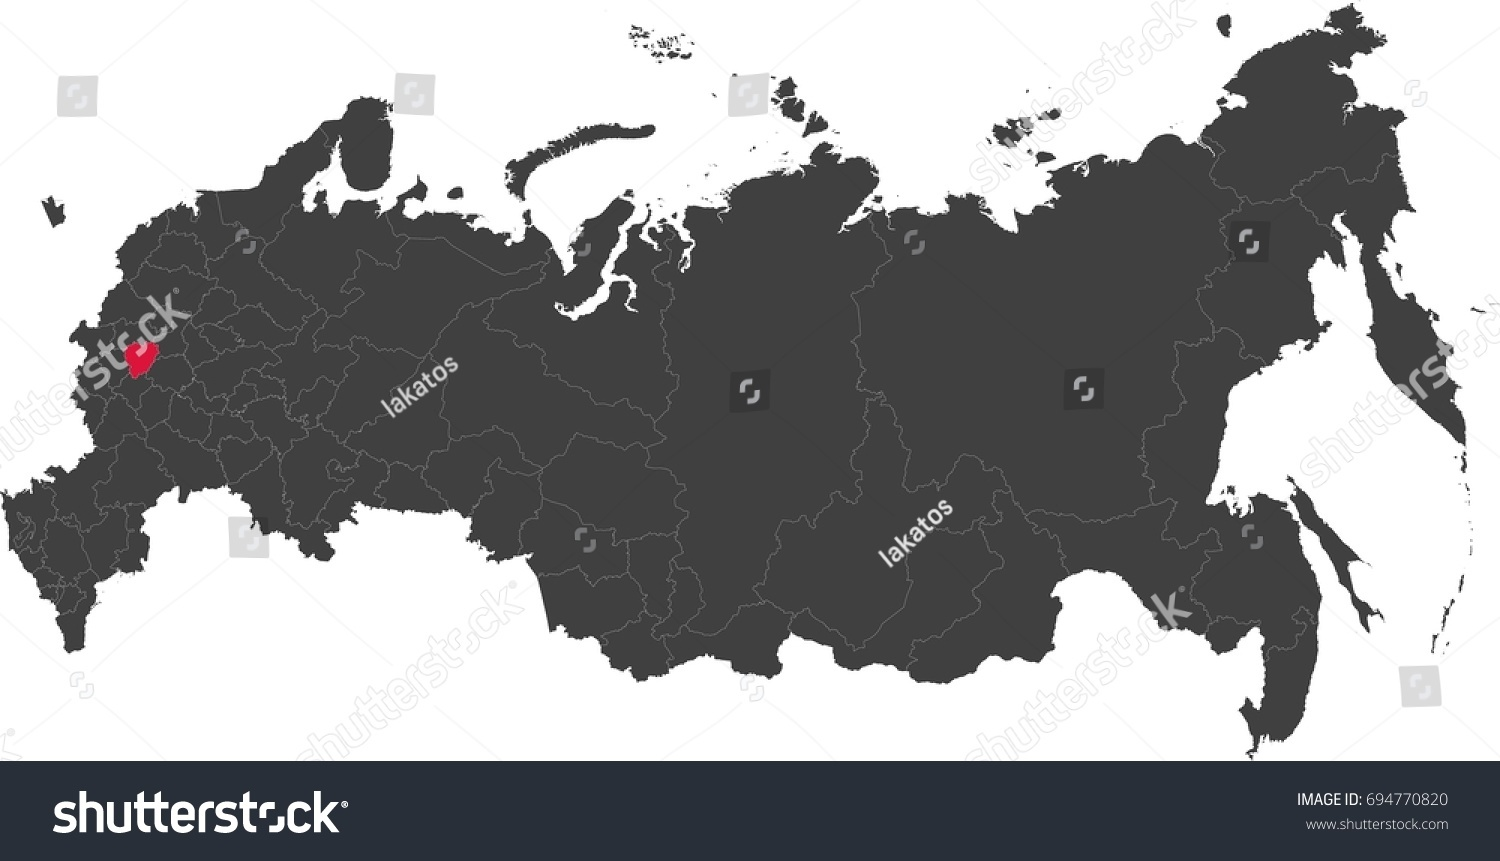 Map Russia Split Into Individual States Stock Vector 694770820